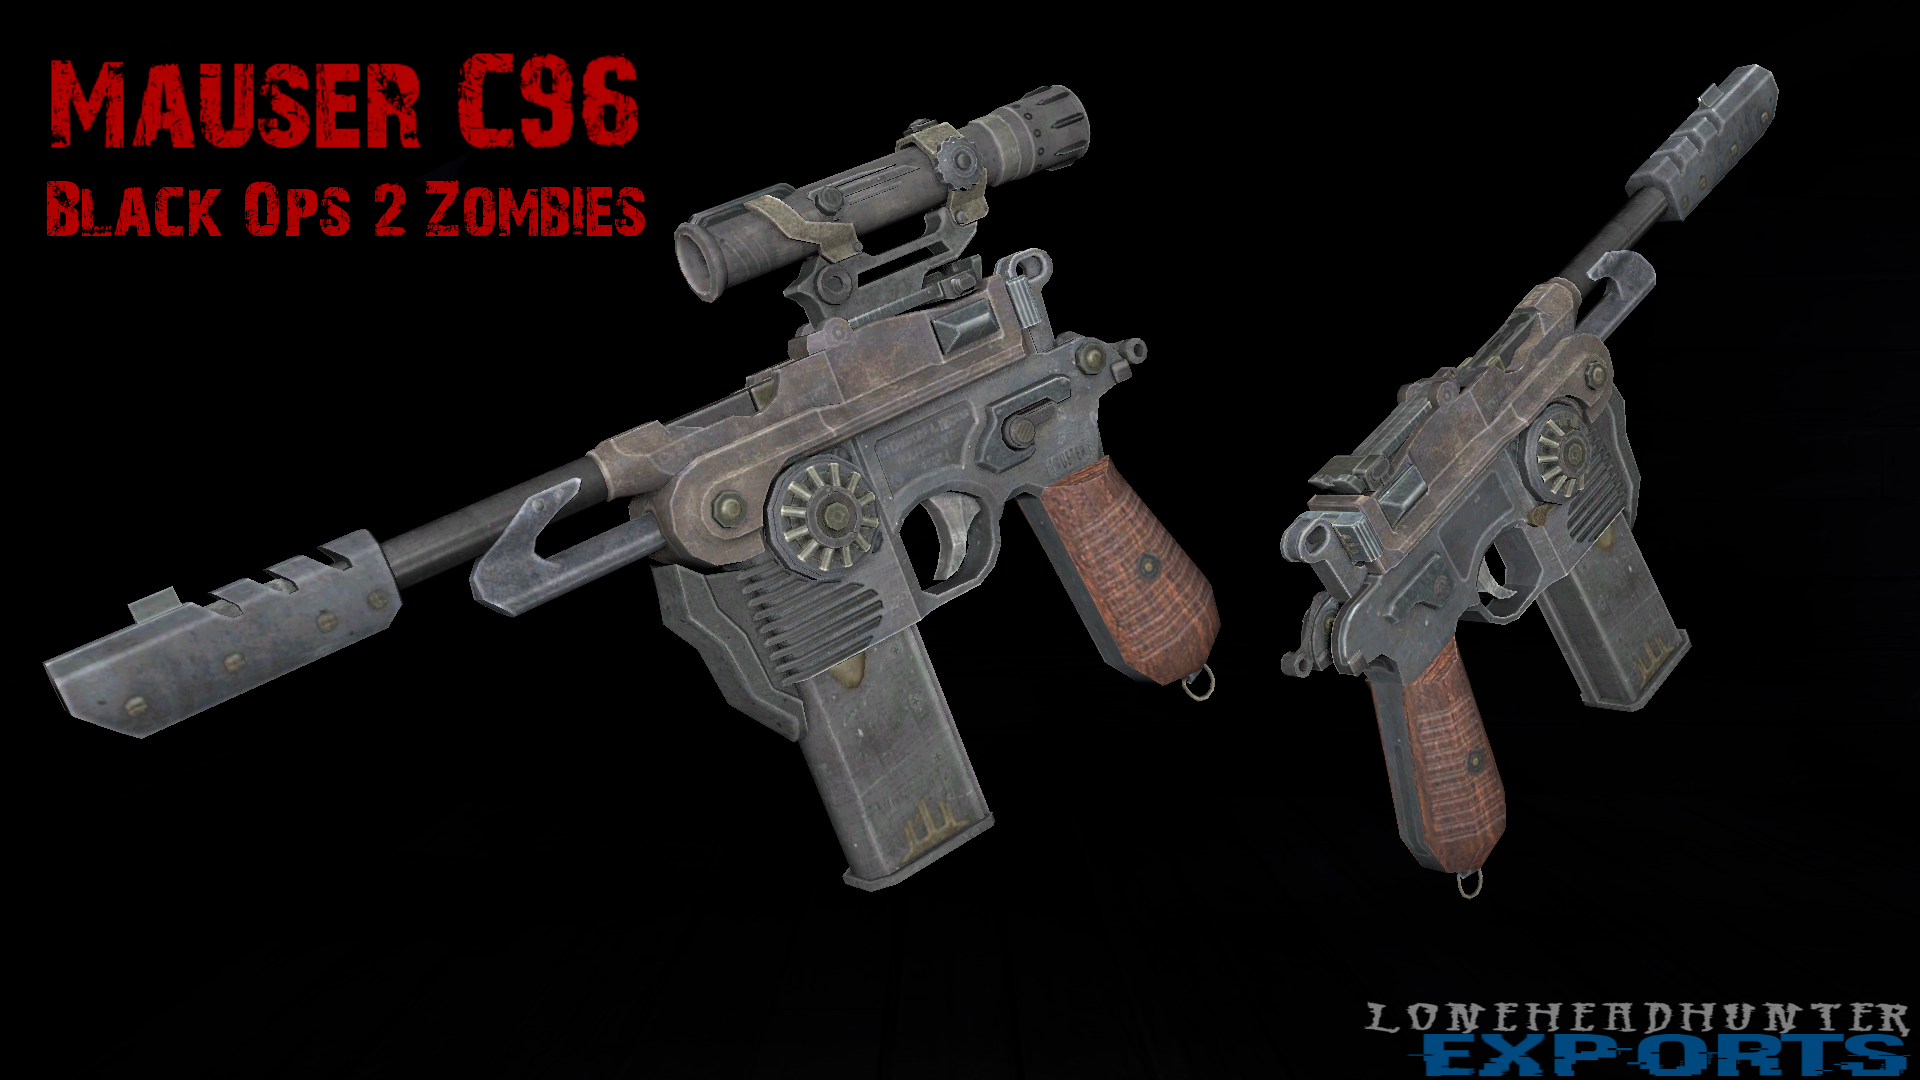 Mauser C96 Pack A Punched